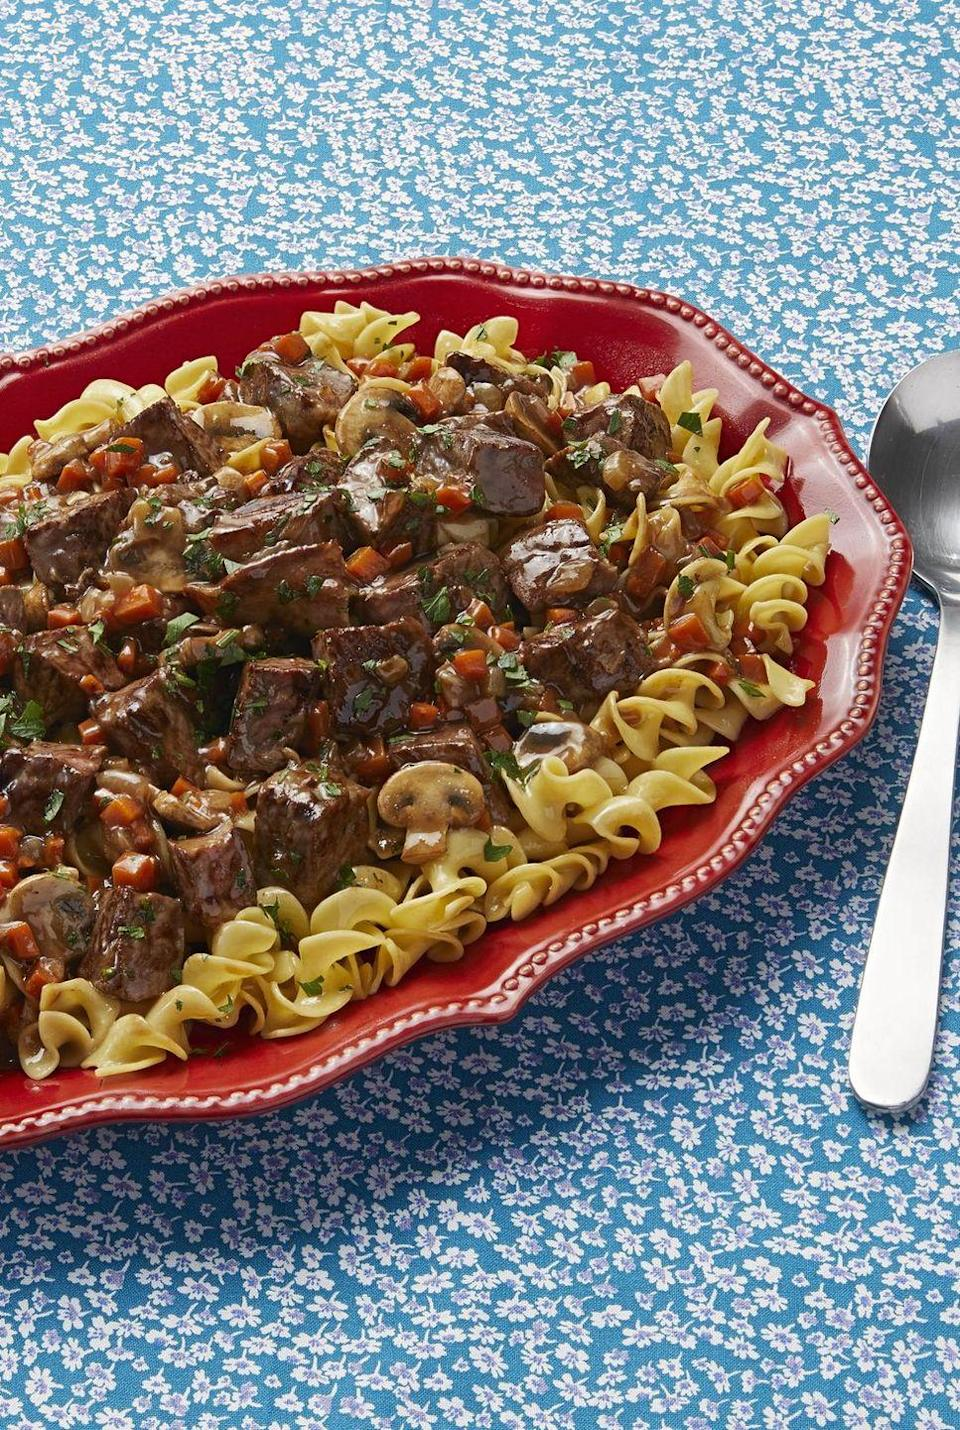 """<p>No list of top comfort foods is complete without this incredible Beef Stroganoff recipe. It's one of Ree's favorite things on earth.</p><p><strong><a href=""""https://www.thepioneerwoman.com/food-cooking/recipes/a83612/beef-stroganoff/"""" rel=""""nofollow noopener"""" target=""""_blank"""" data-ylk=""""slk:Get the recipe."""" class=""""link rapid-noclick-resp"""">Get the recipe.</a></strong> </p>"""